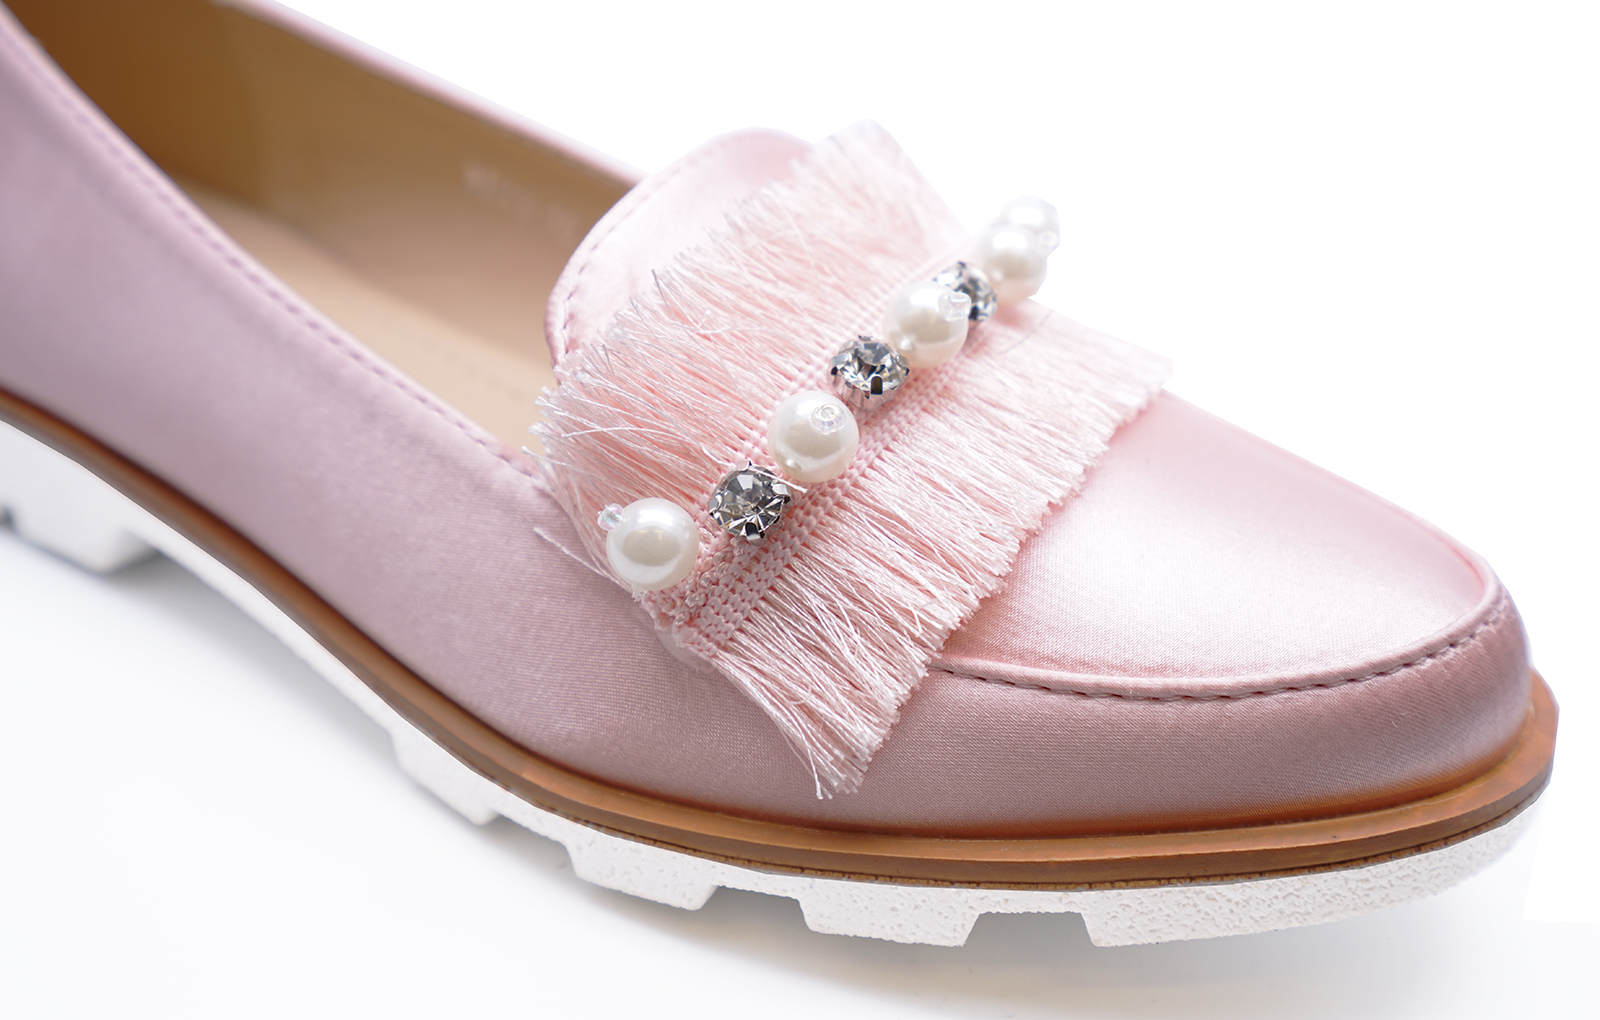 LADIES PINK SLIP-ON STUD LOAFERS SMART CASUAL FLAT COMFY PUMPS SHOES SIZES 3-8